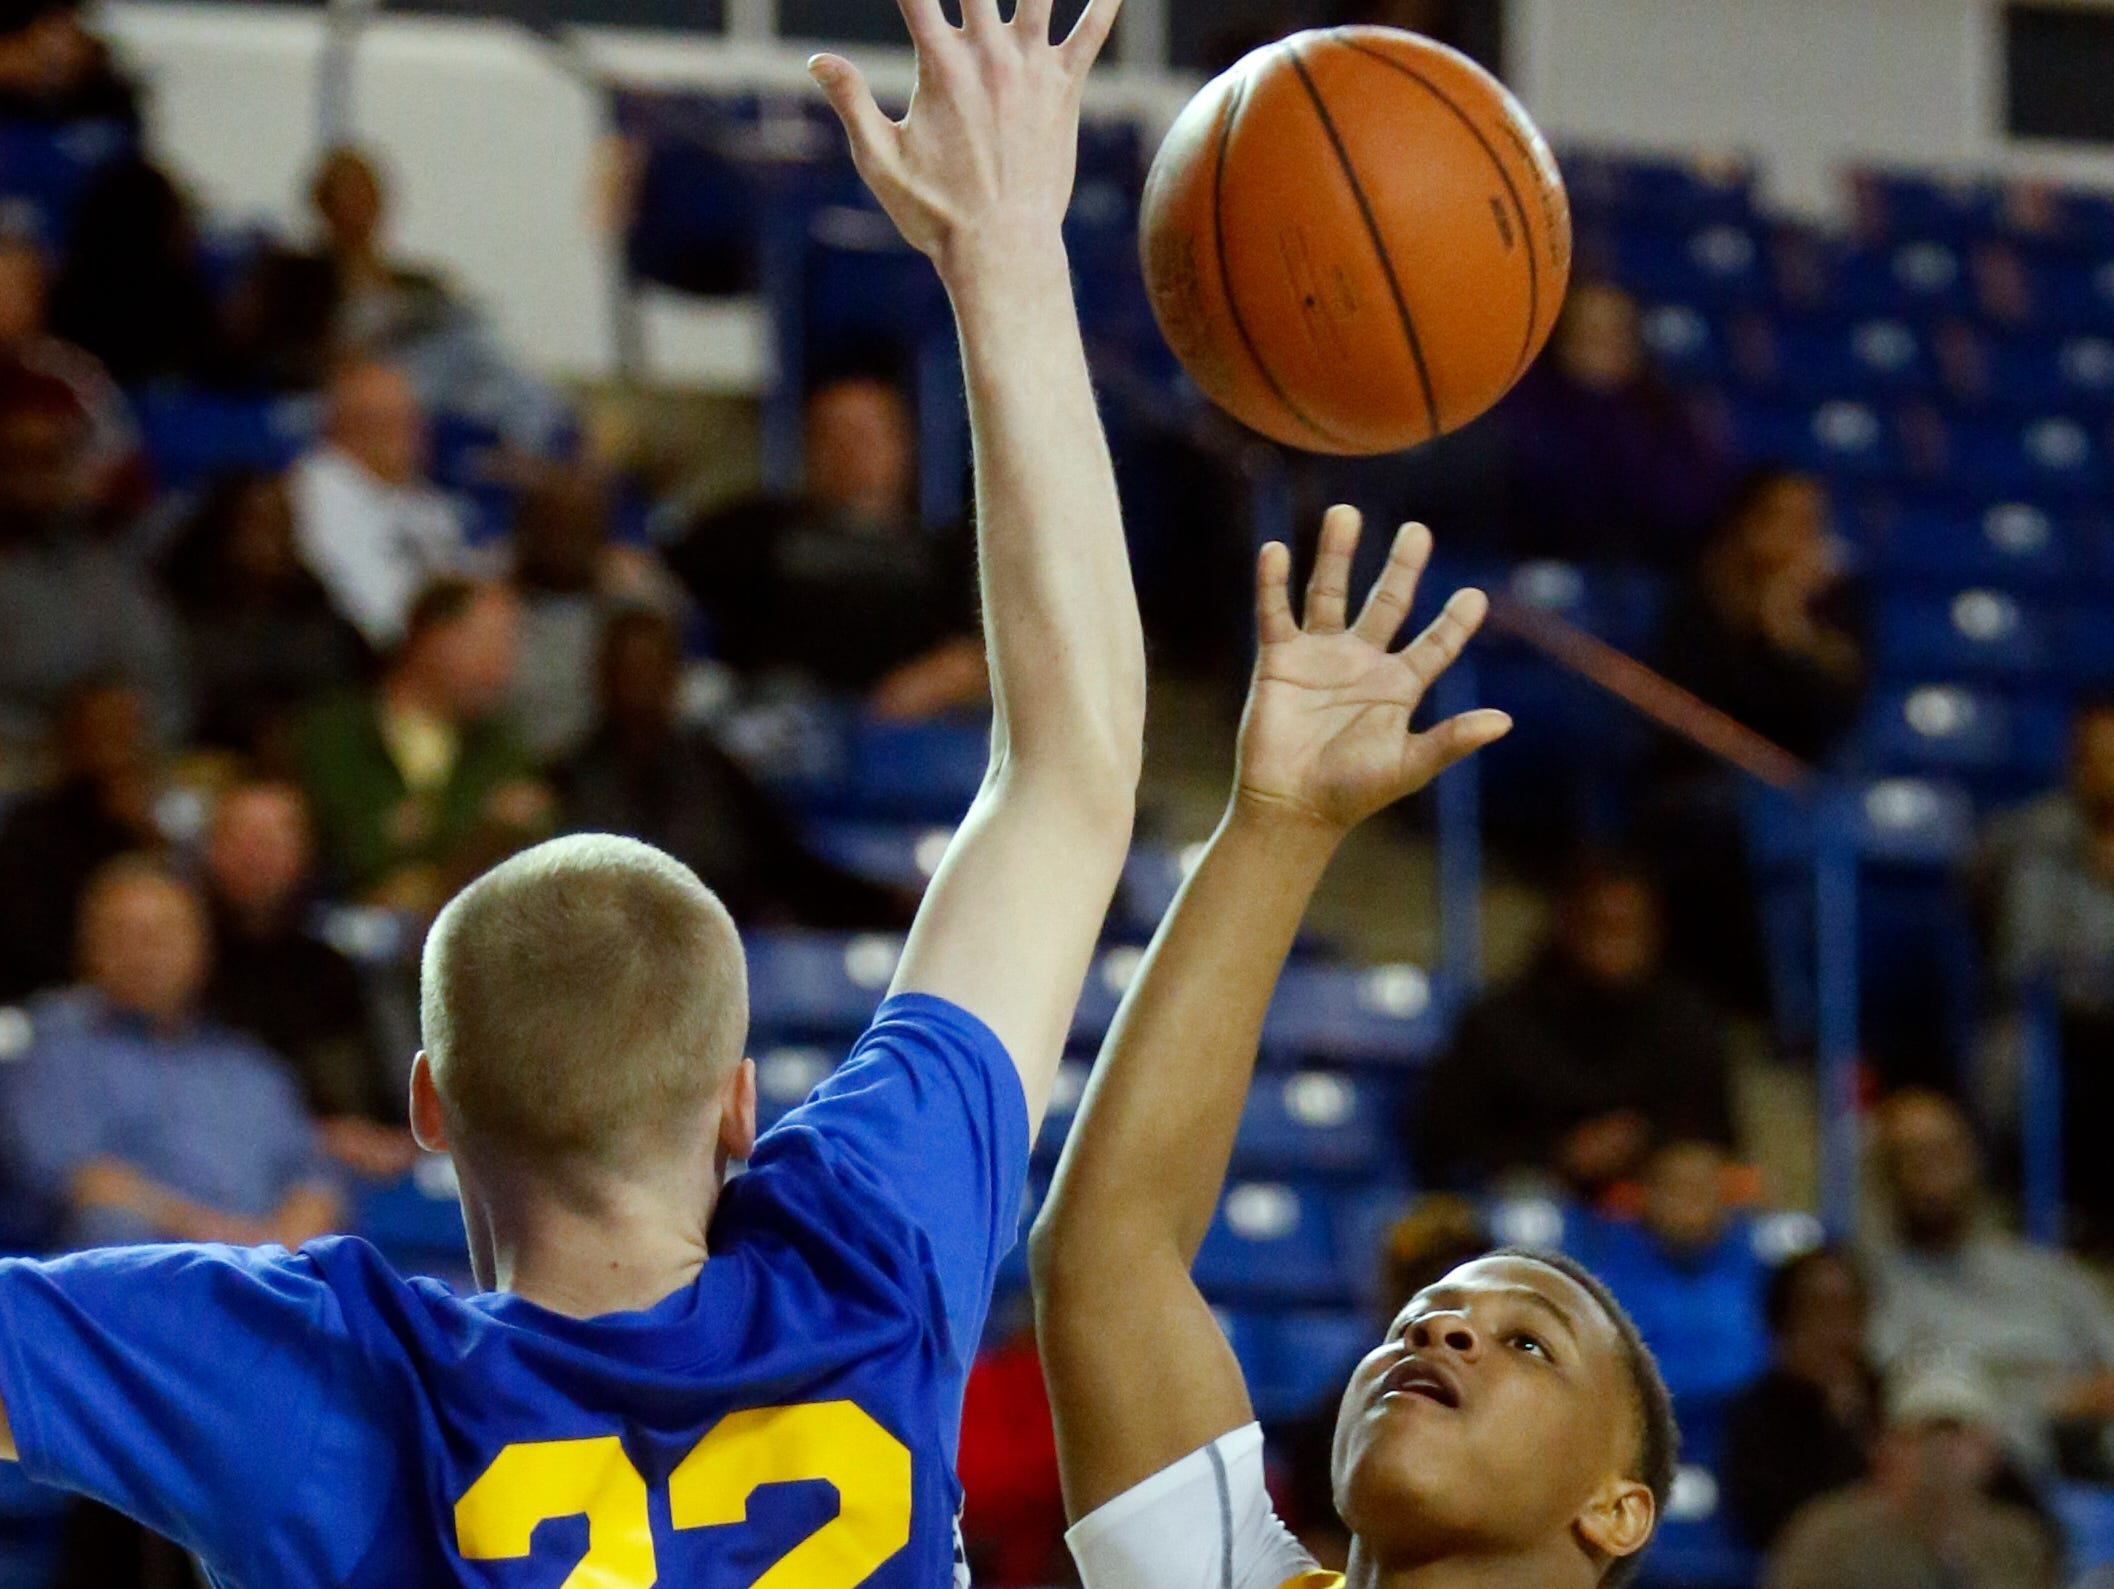 Blue's Joe McHugh of Concord (left) defends as Gold's Jaquan Hooks of Caesar Rodney drives in the first half of the Blue-Gold All-Star Basketball game at the Bob Carpenter Center Saturday.